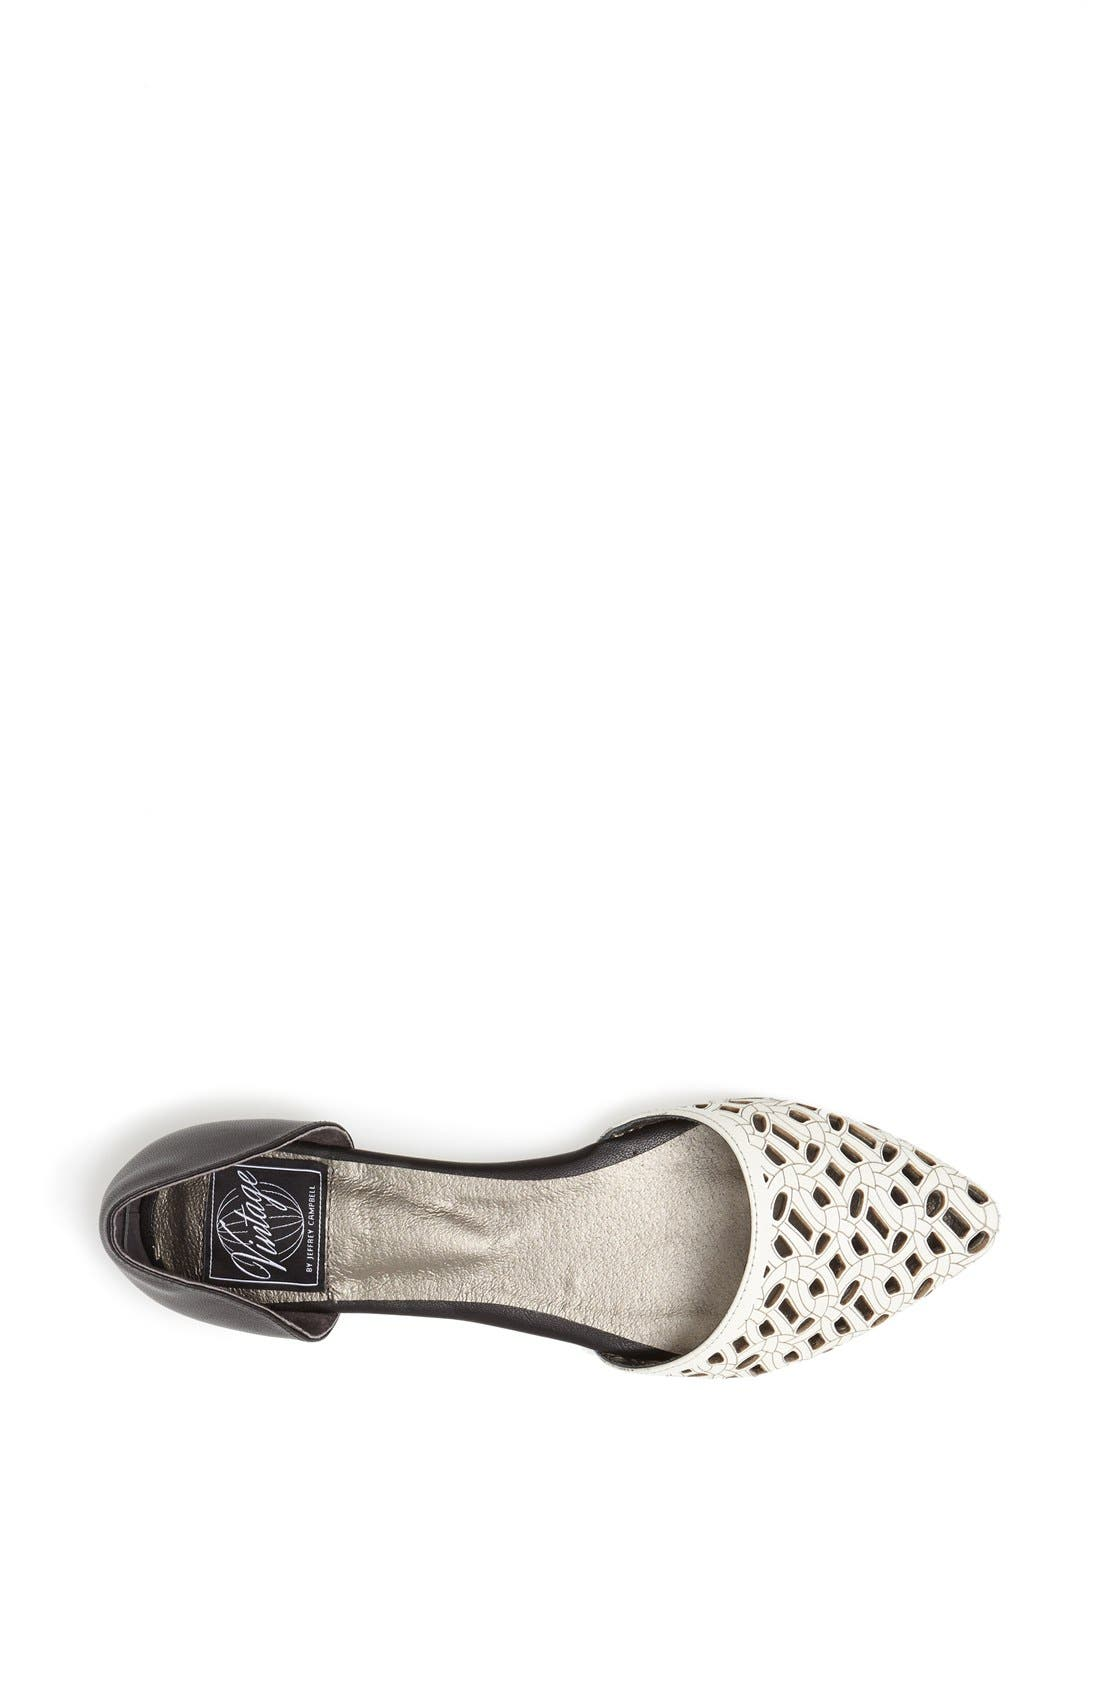 Alternate Image 3  - Jeffrey Campbell 'In Love' Laser Cut d'Orsay Flat